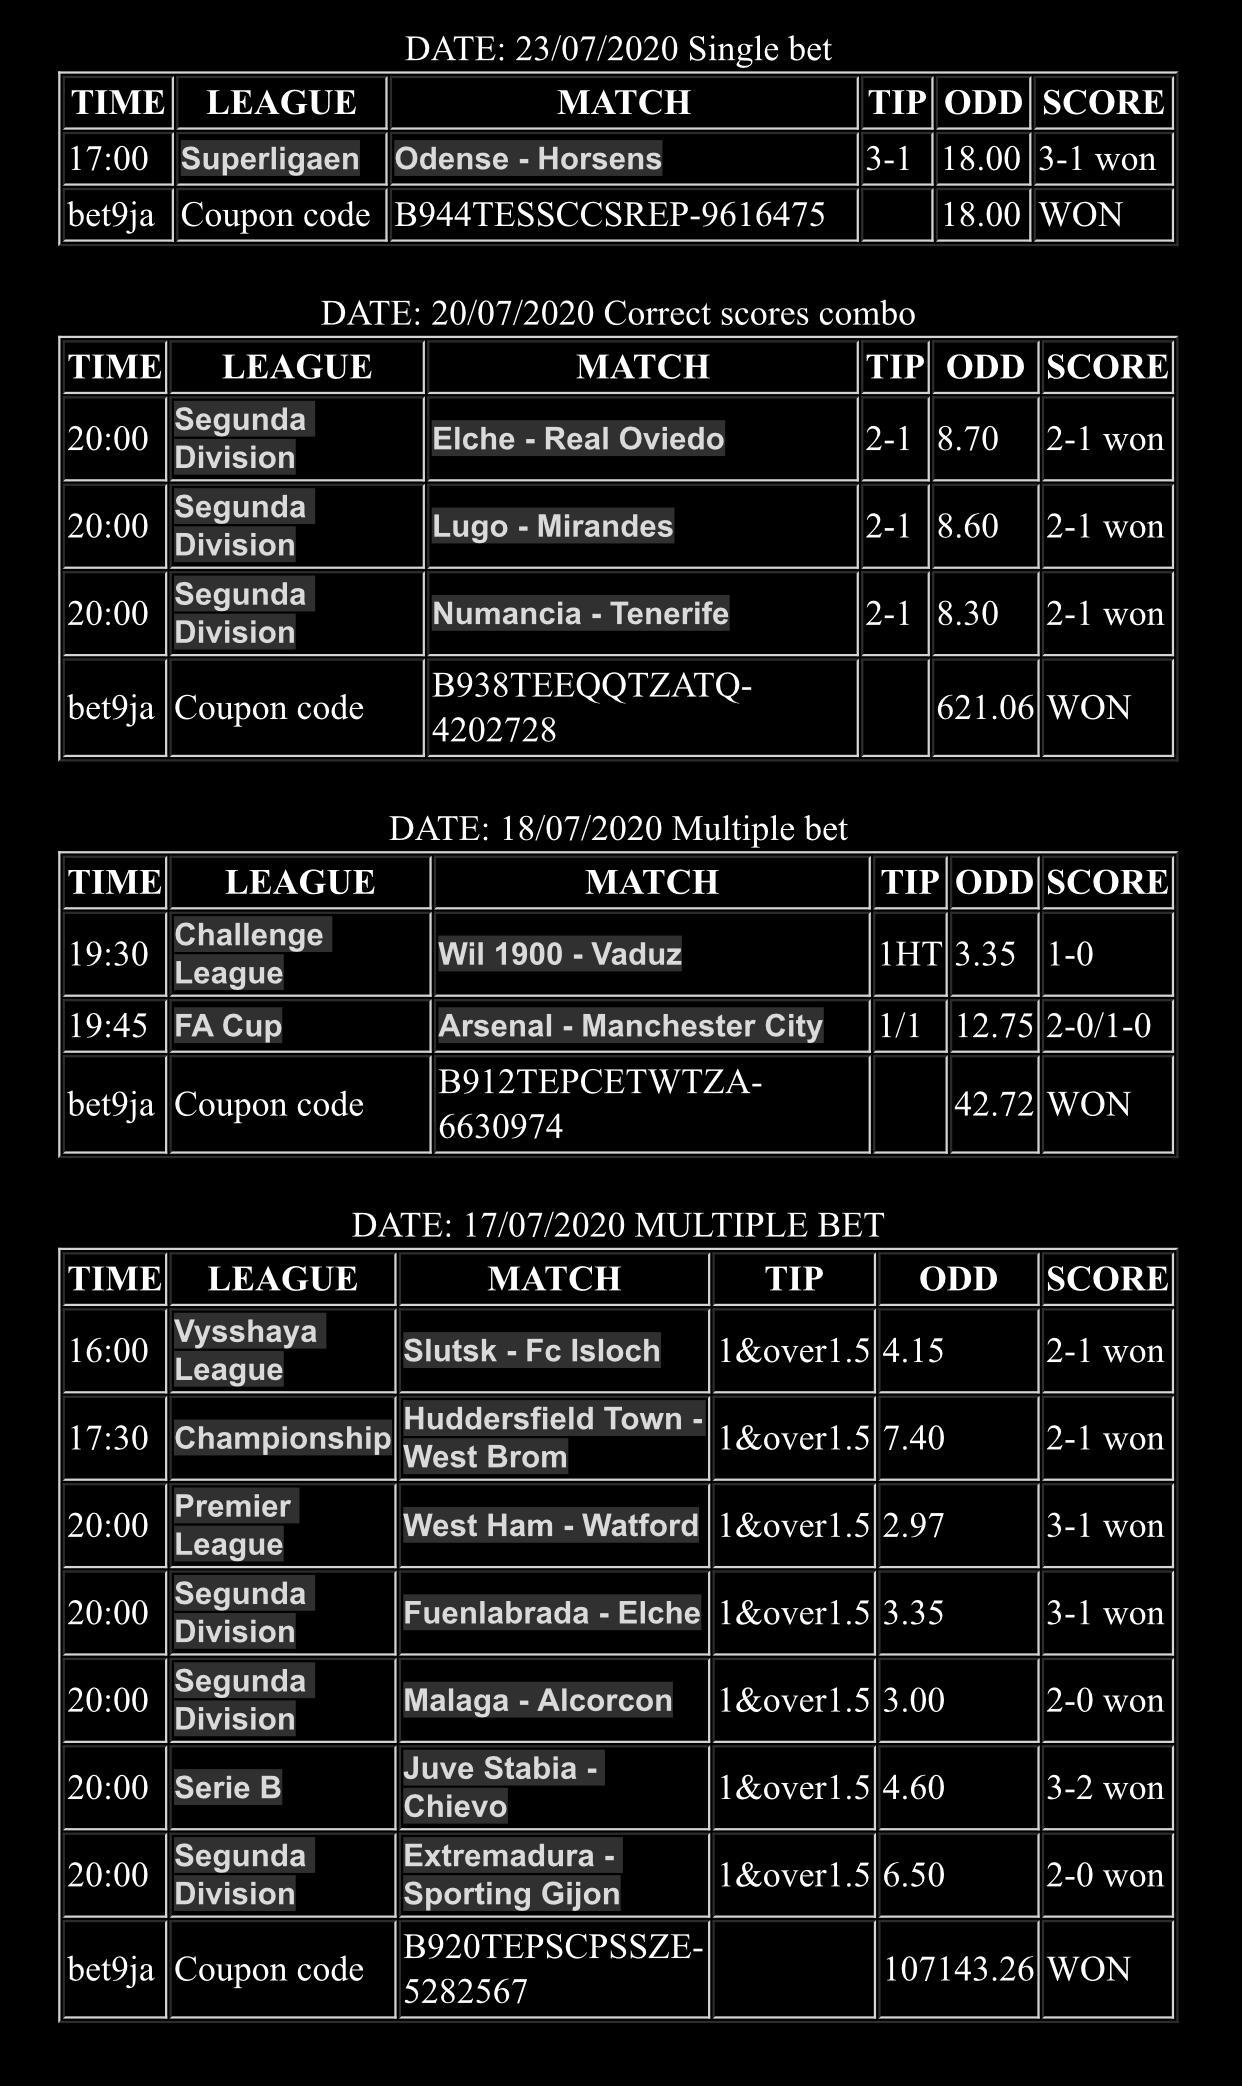 fixed odds coupon betting odds